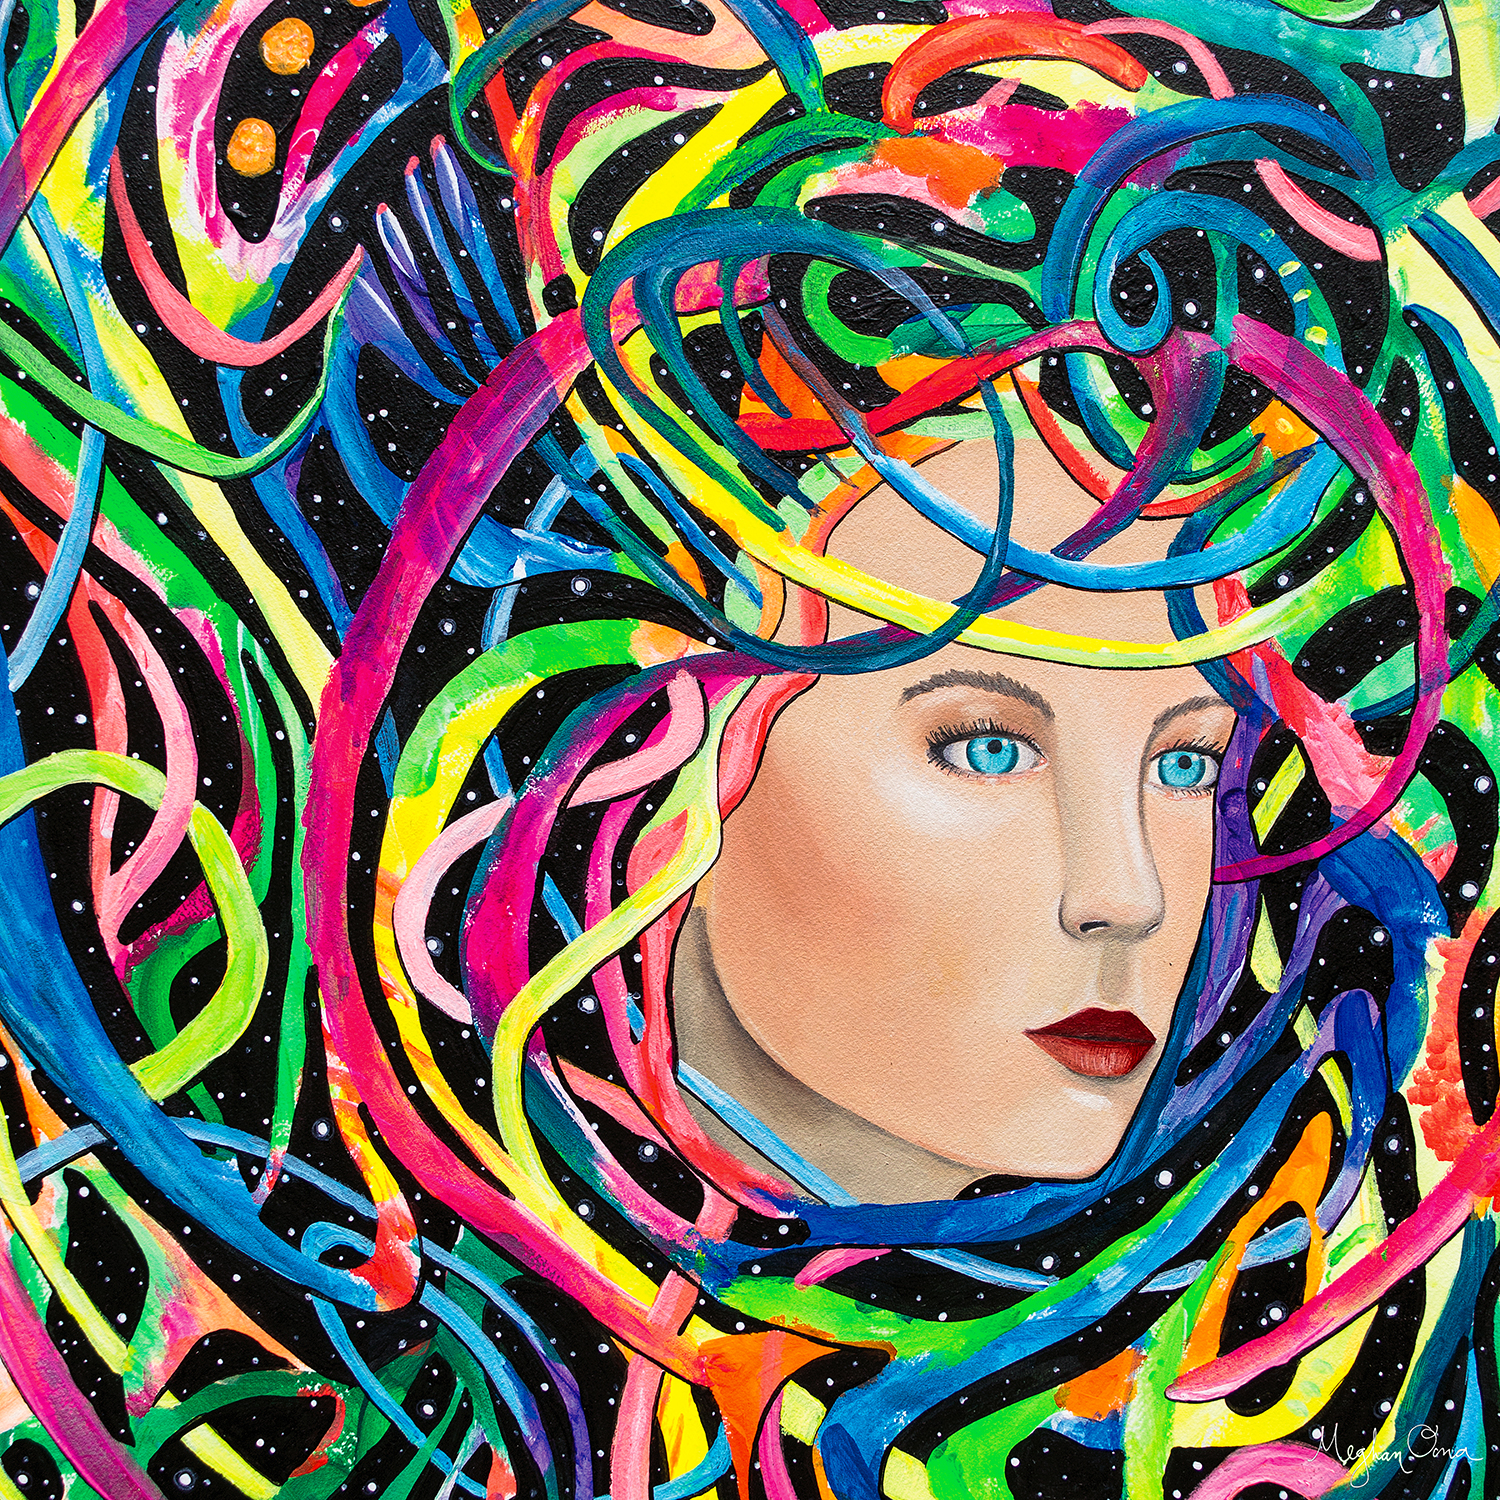 woman's face appearing from a web of colorful lines with night sky and stars in background